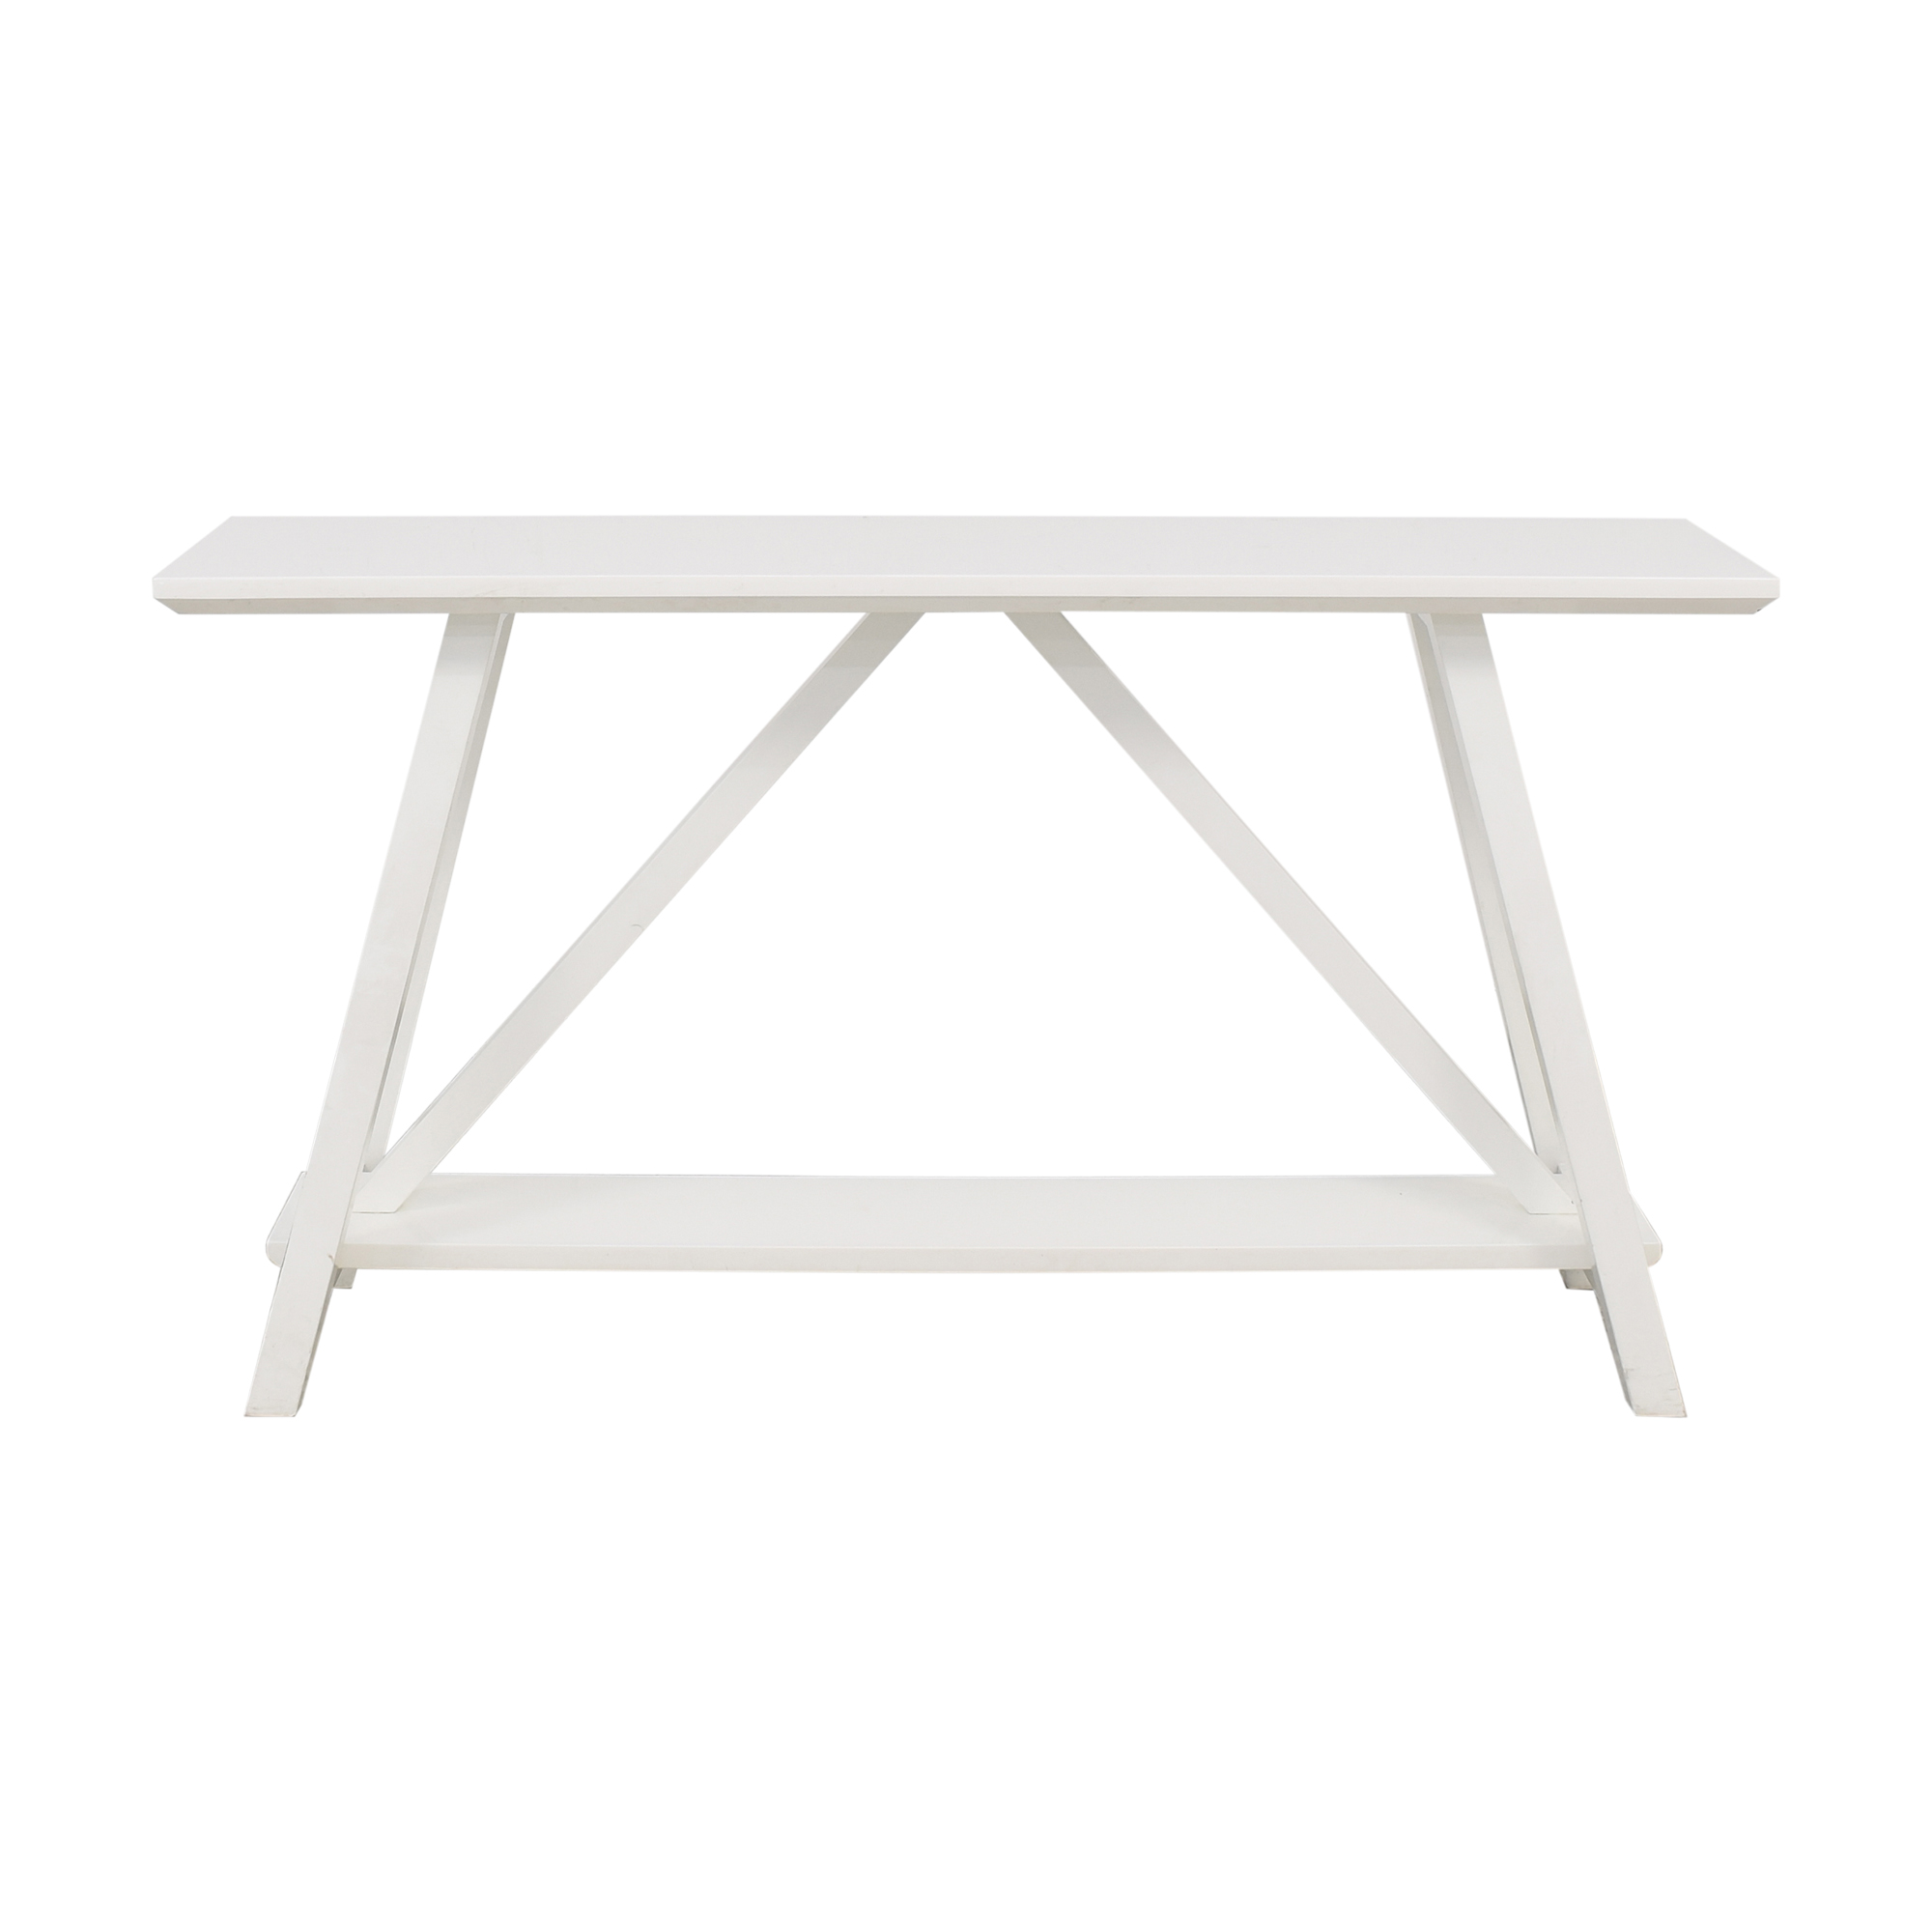 Crate & Barrel Crate & Barrel Console Table ma